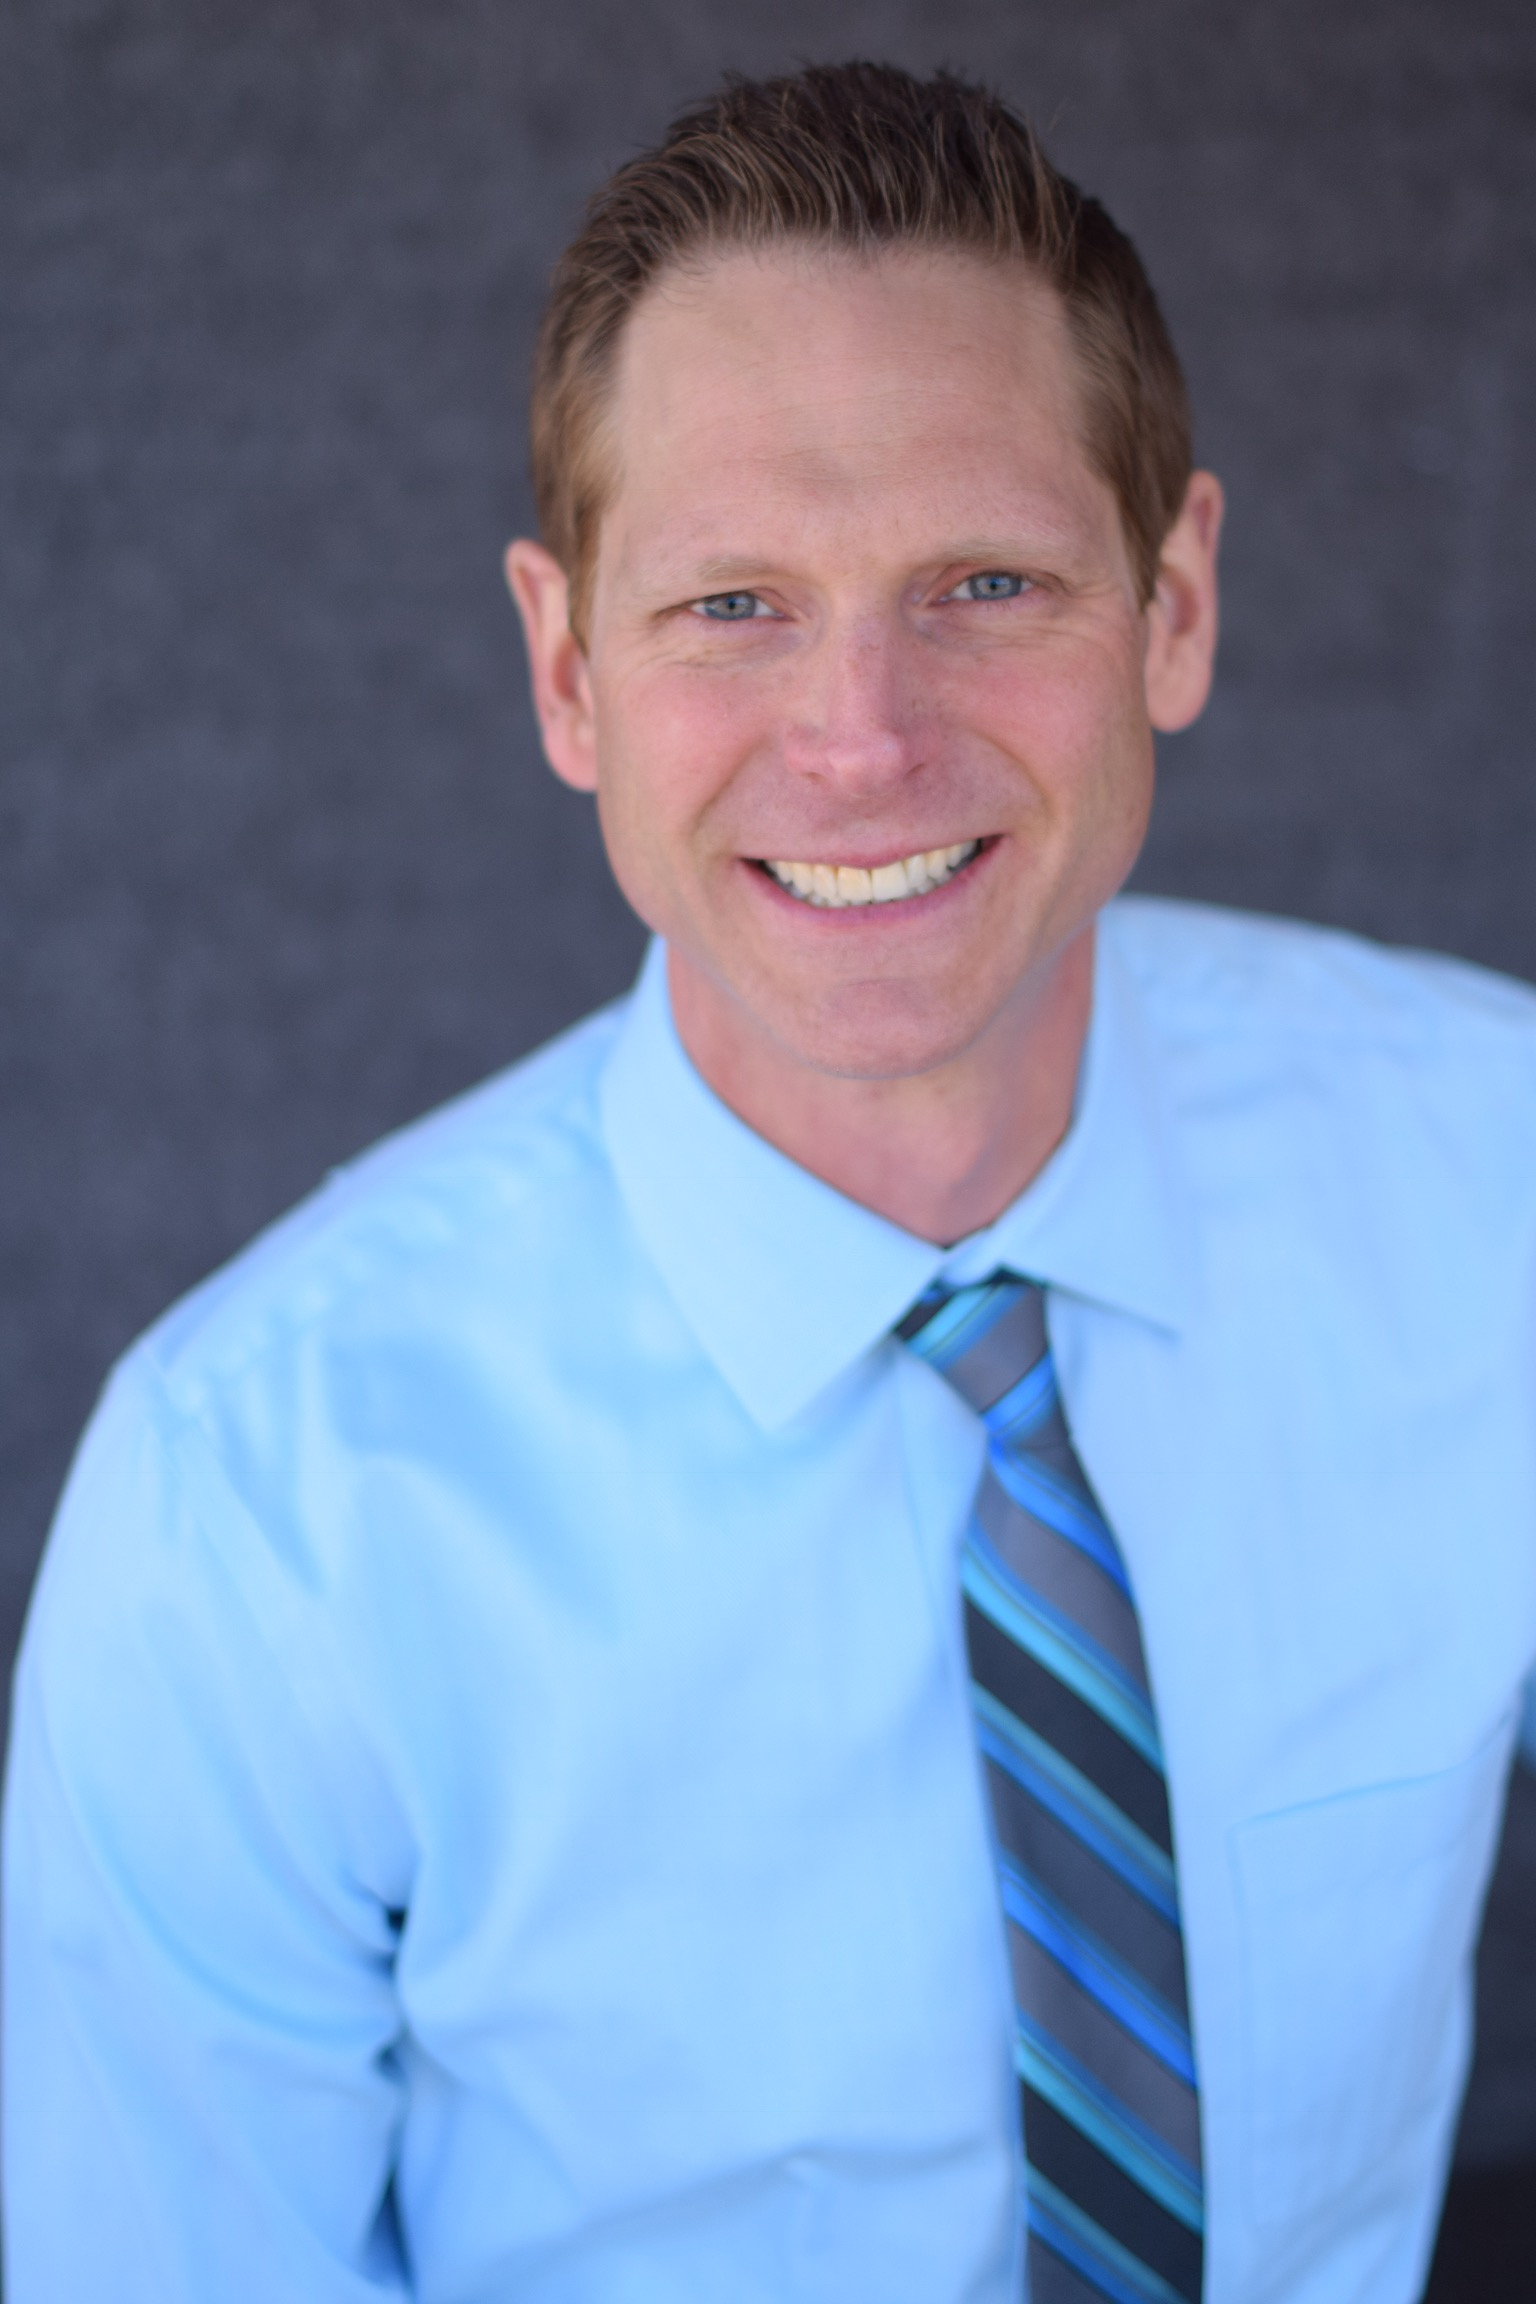 Dr. Kyle Anderson, Chiropractor serving Eau Claire and Chippewa Falls